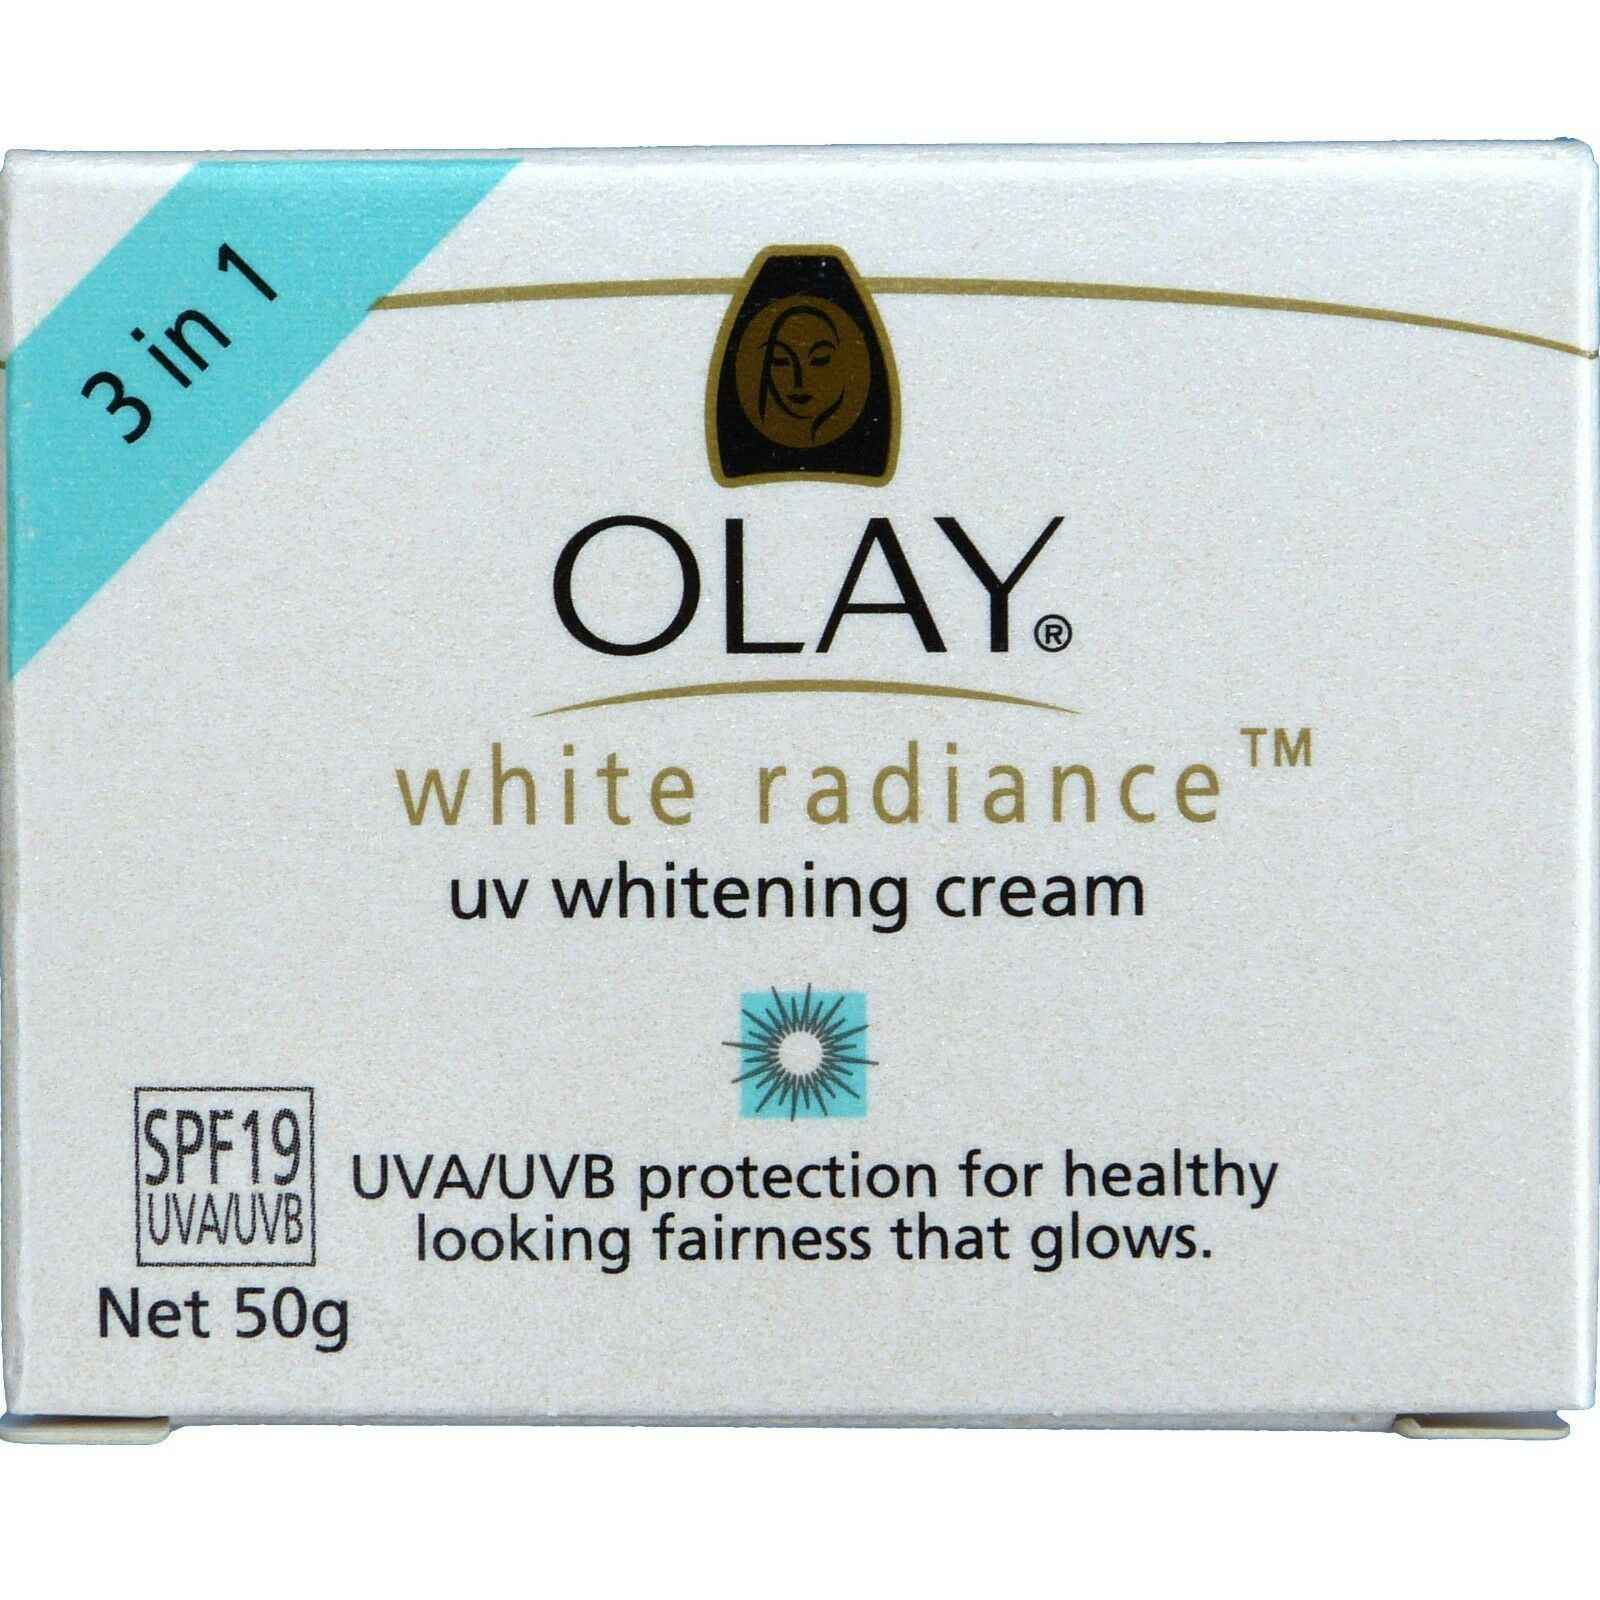 Olay White Radiance UV Whitening Cream SPF 19 Skin Whitening with Sunscreen 50g